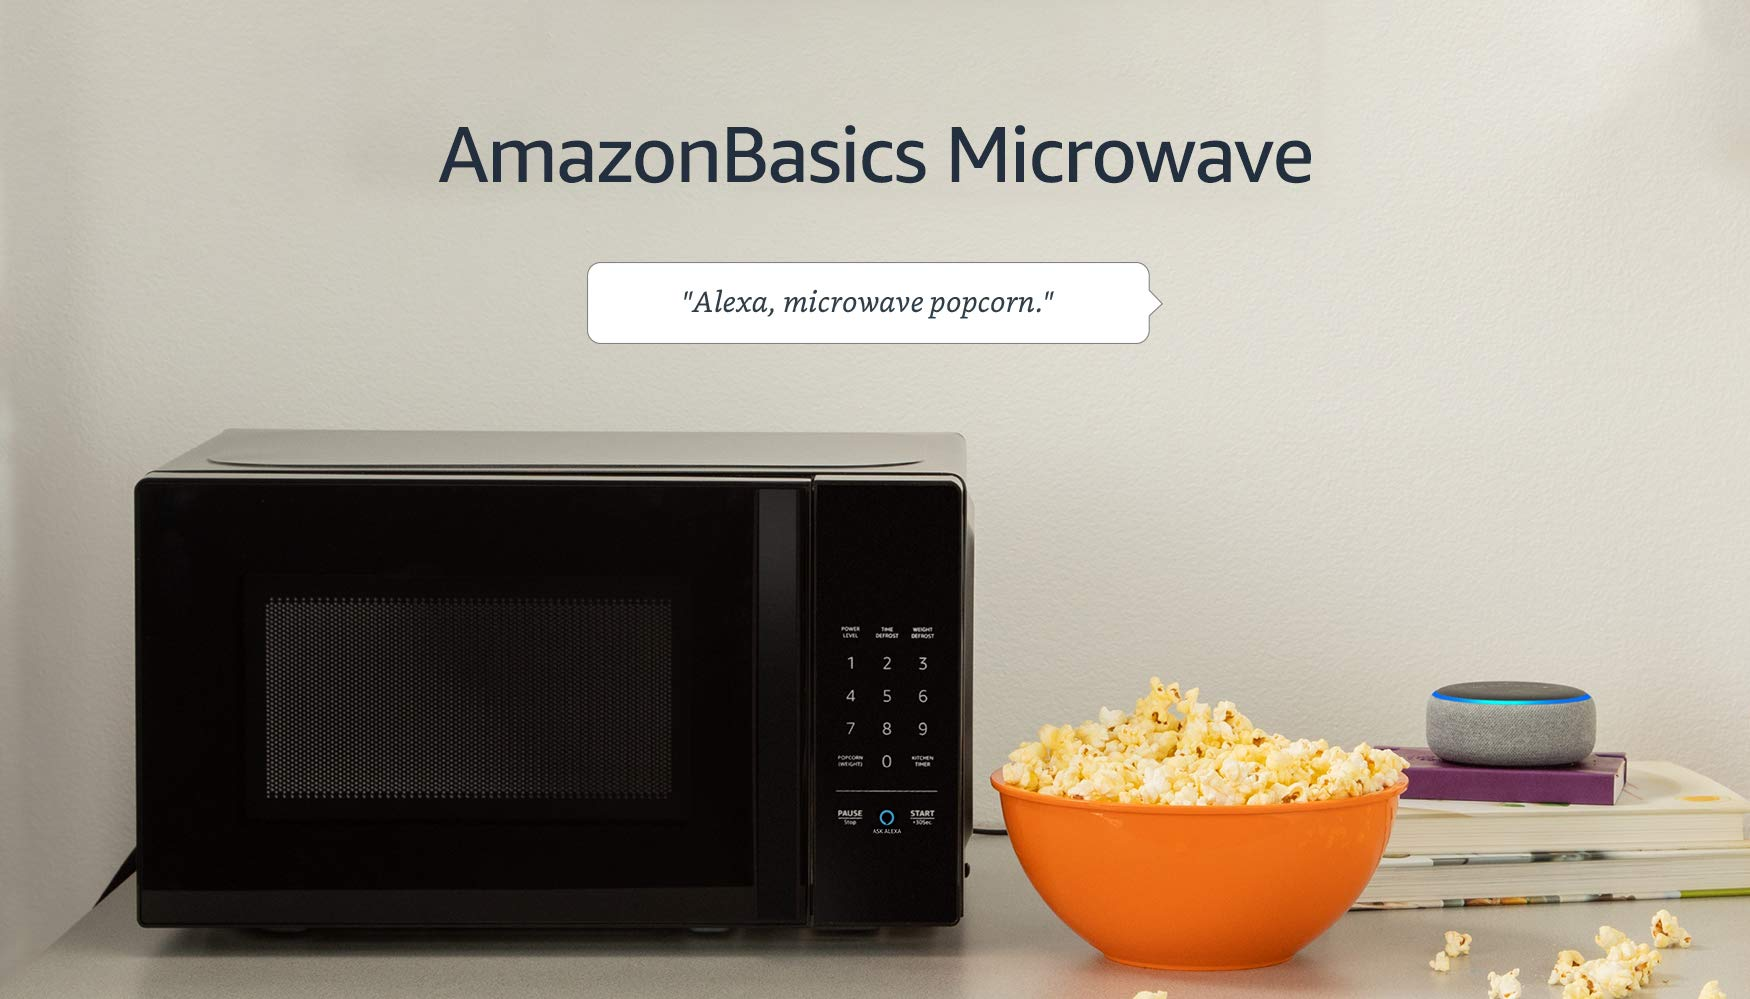 Amazon Basics Microwave bundle with Echo Dot (3rd Gen) - Charcoal 9 Now it's easier to defrost vegetables, make popcorn, cook potatoes, and reheat rice. With an Echo device (not included), quick-cook voice presets and a simplified keypad let you just ask Alexa to start microwaving. Automatically reorder popcorn when you run low and save 10% on popcorn orders-enabled by Amazon Dash Replenishment technology Compact size saves counter space, plus 10 power levels, a kitchen timer, a child lock, and a turntable.